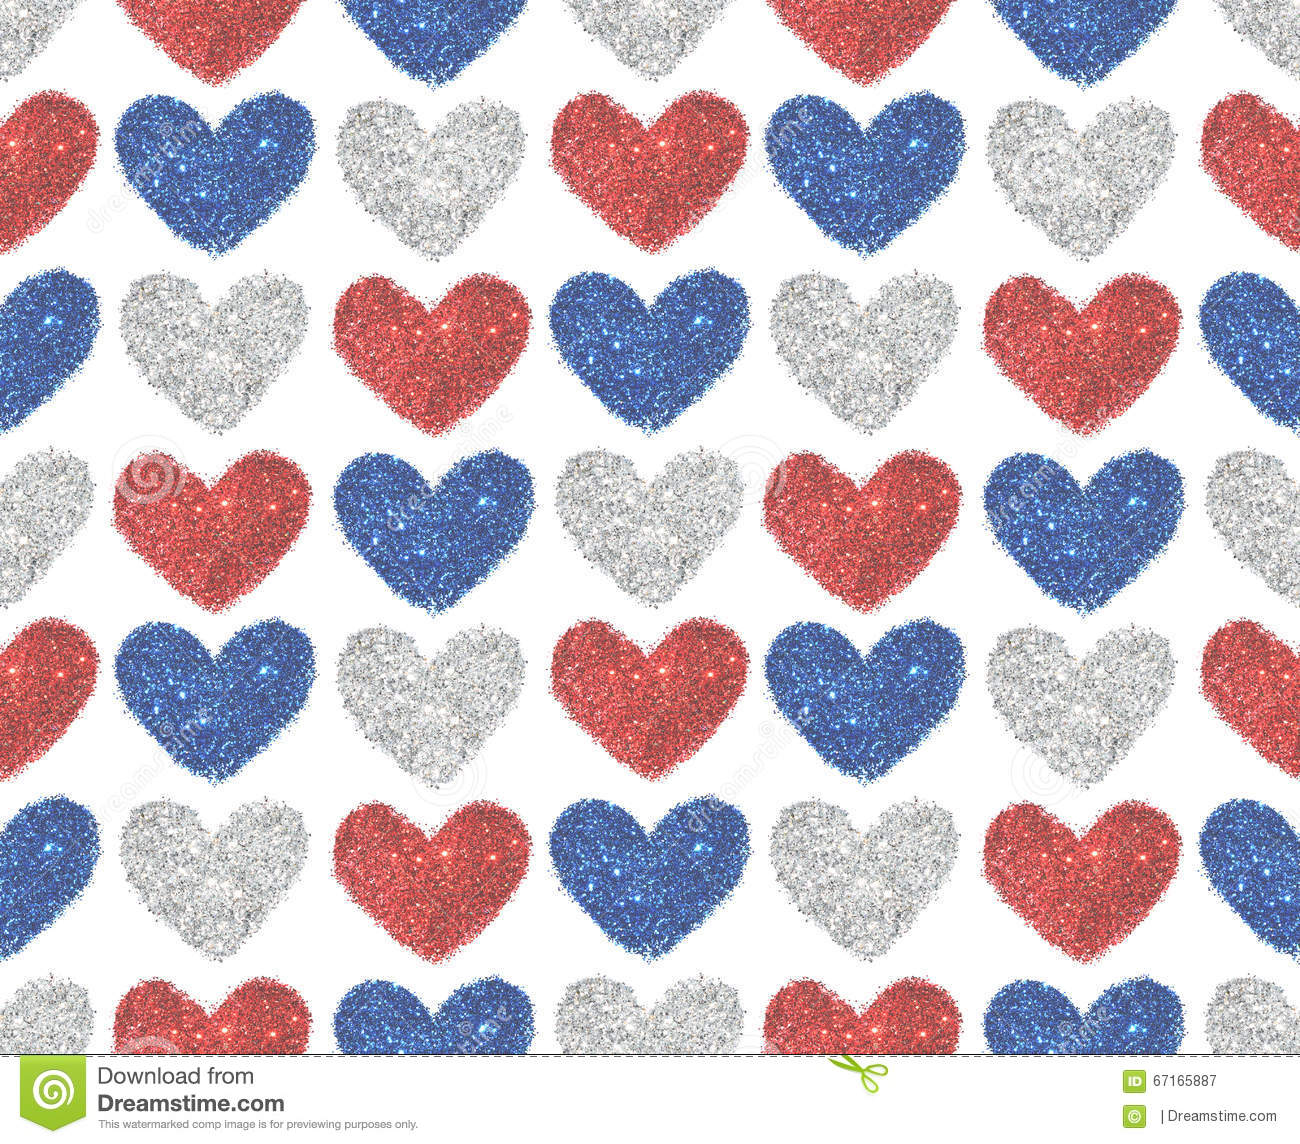 background with hearts of red blue and silver glitter seamless pattern stock image image of brilliant abstract 67165887 dreamstime com